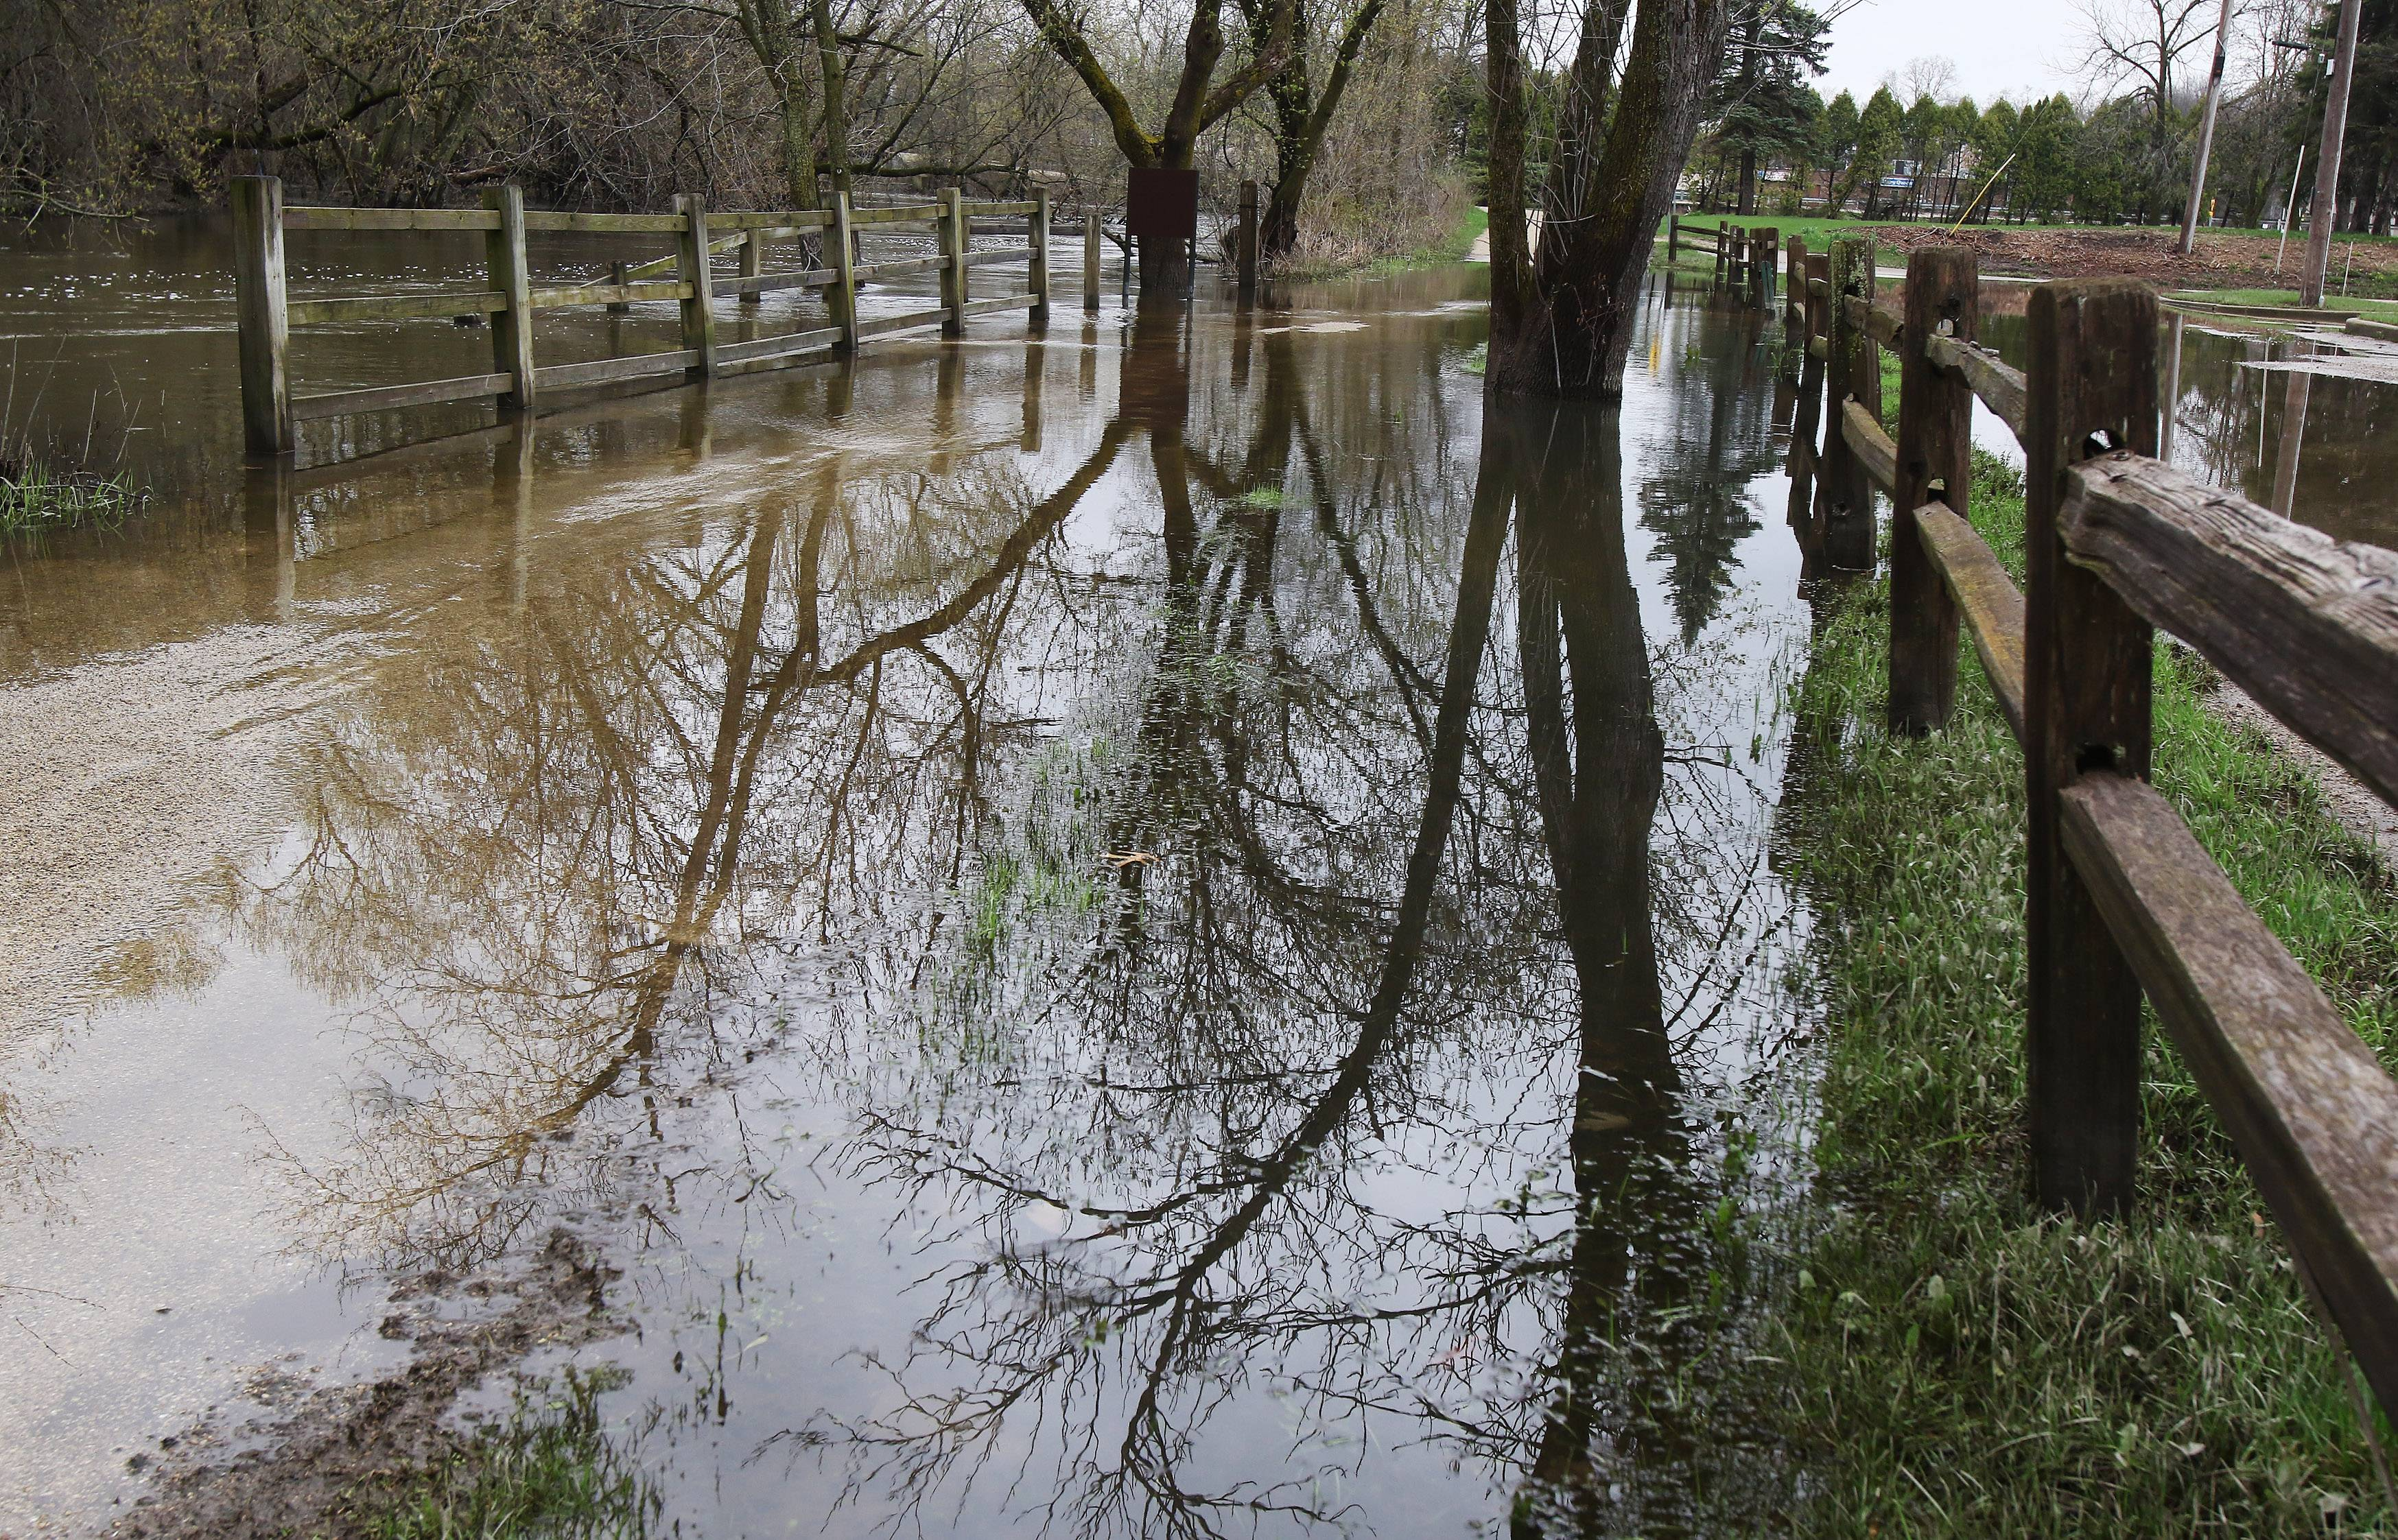 If the proper stormwater management policies aren't enforced on the $10 billion Foxconn project in southeast Wisconsin, Gurnee Mayor Kristina Kovarik said Monday night, flooding could get worse in the village.